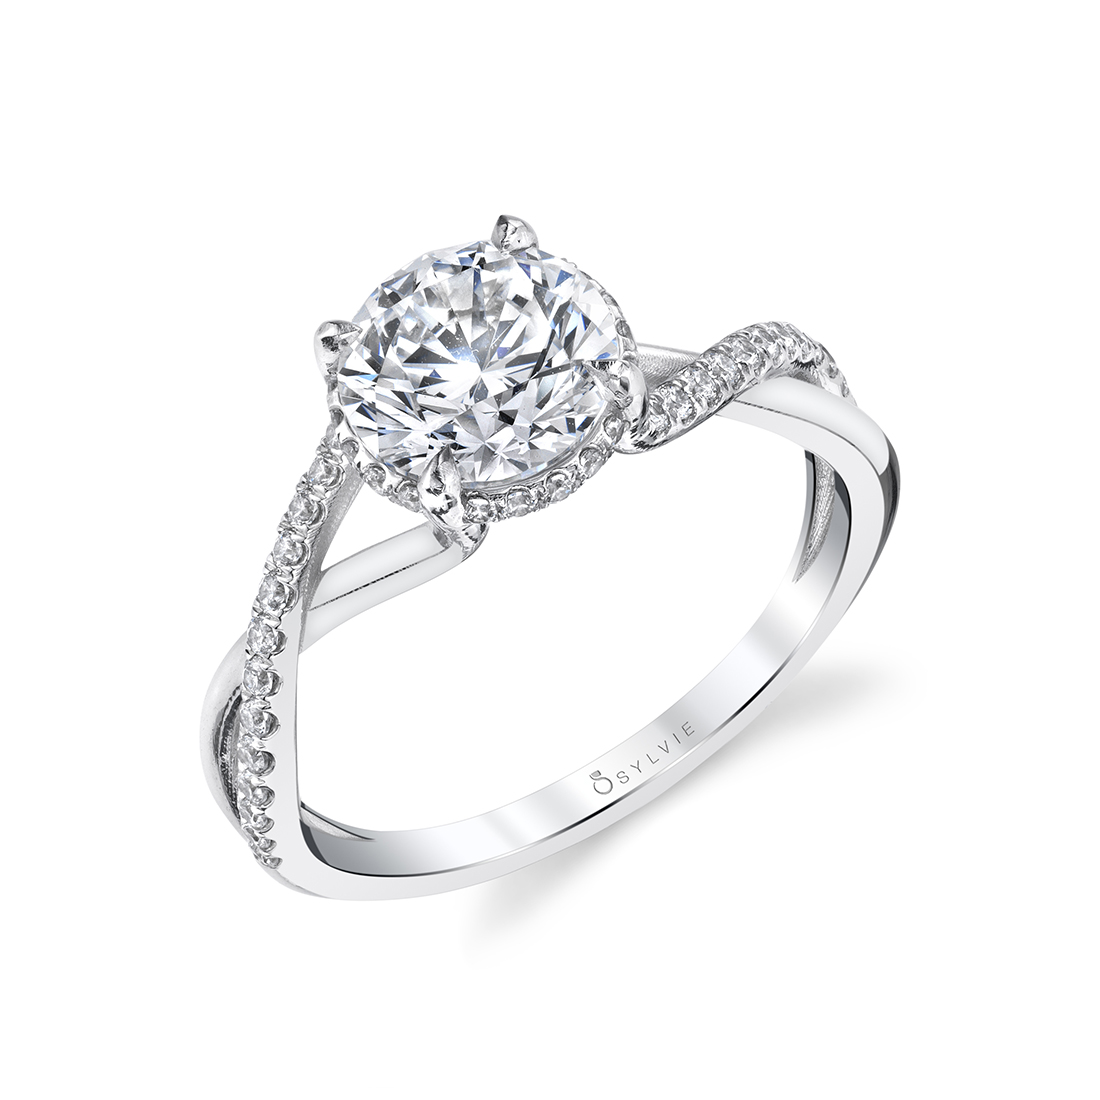 Spiral Engagement Ring with Hidden Halo in White Gold - Amahle - S1937